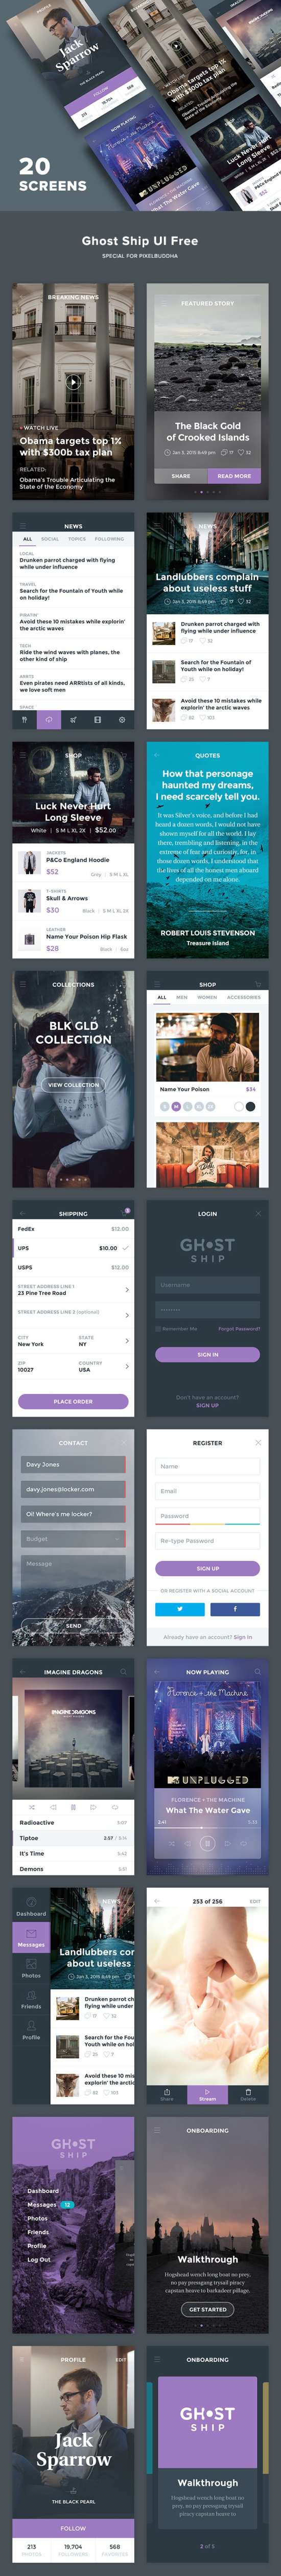 ghost ship mobile app ui kit psd